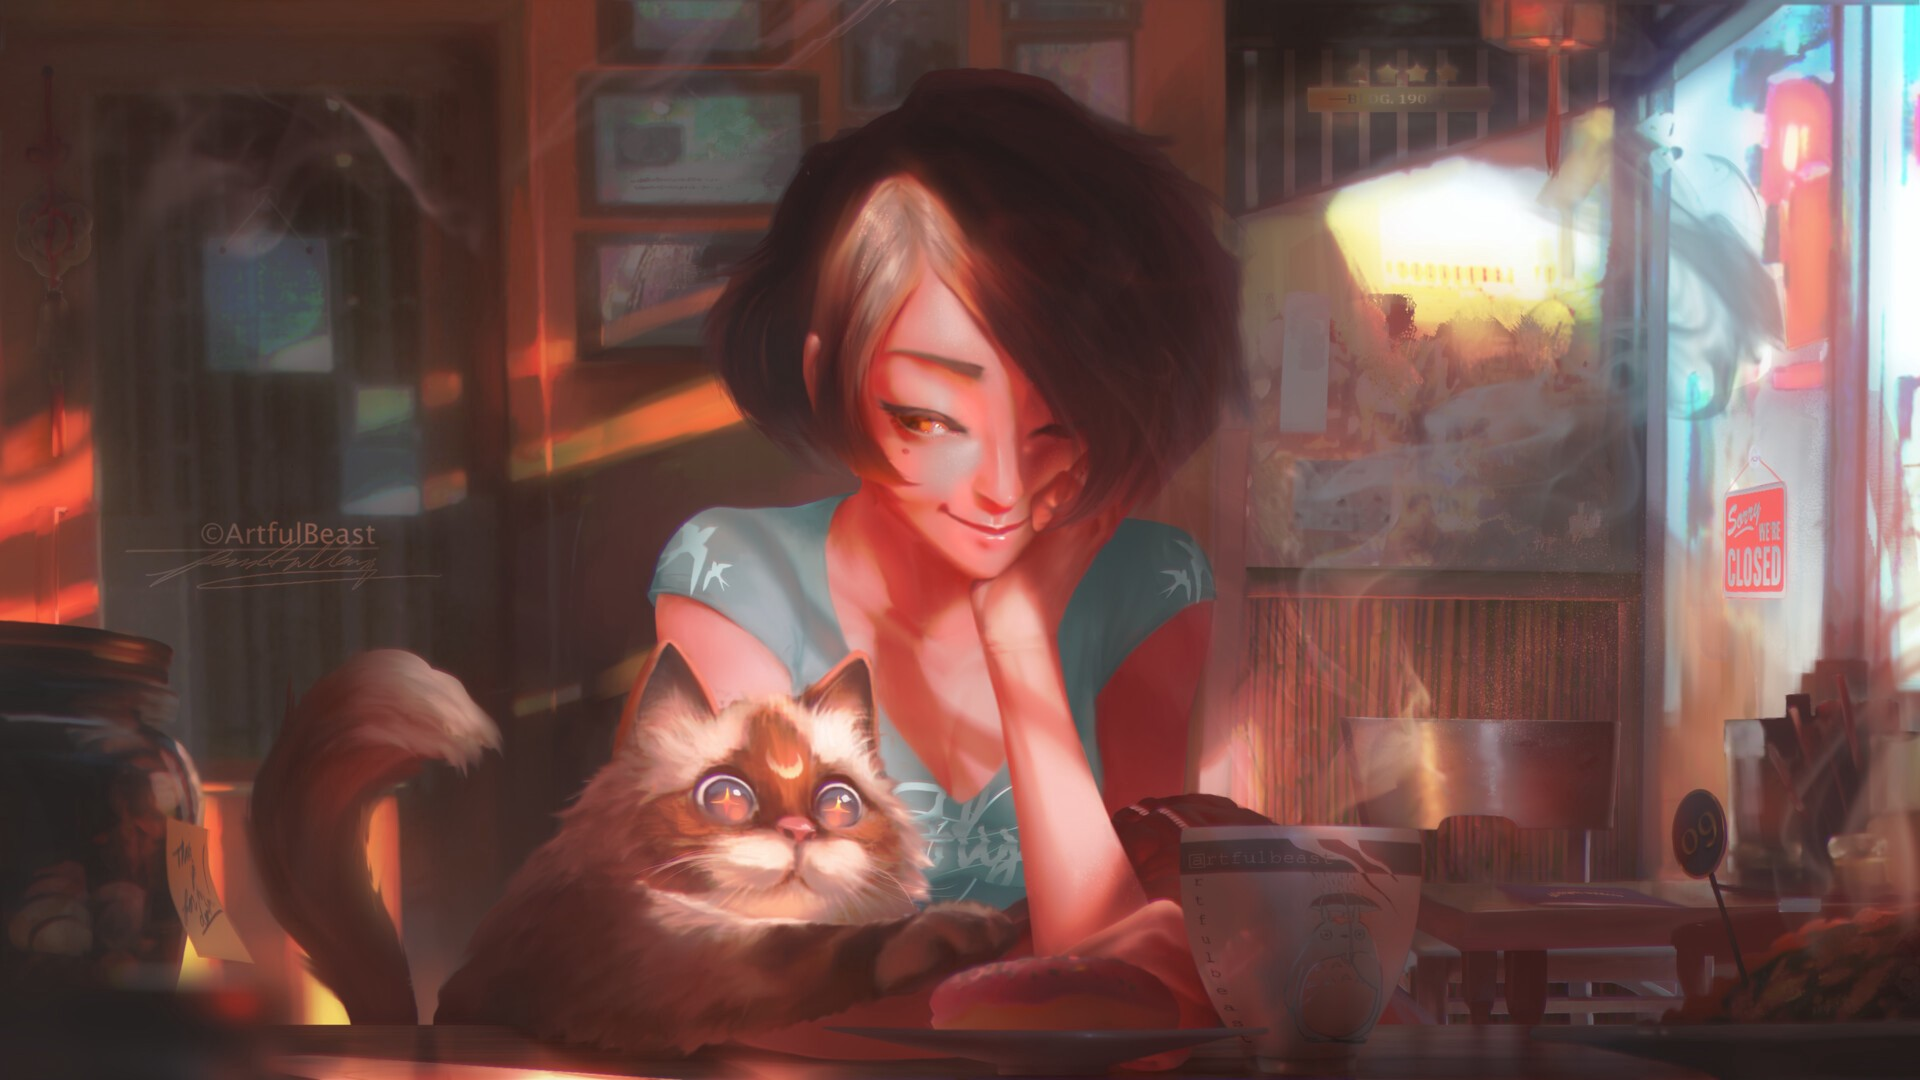 A girl at a café, about to have coffee. A cat beside her tries to grab something with its paw. Cat has a moon shaped spot.